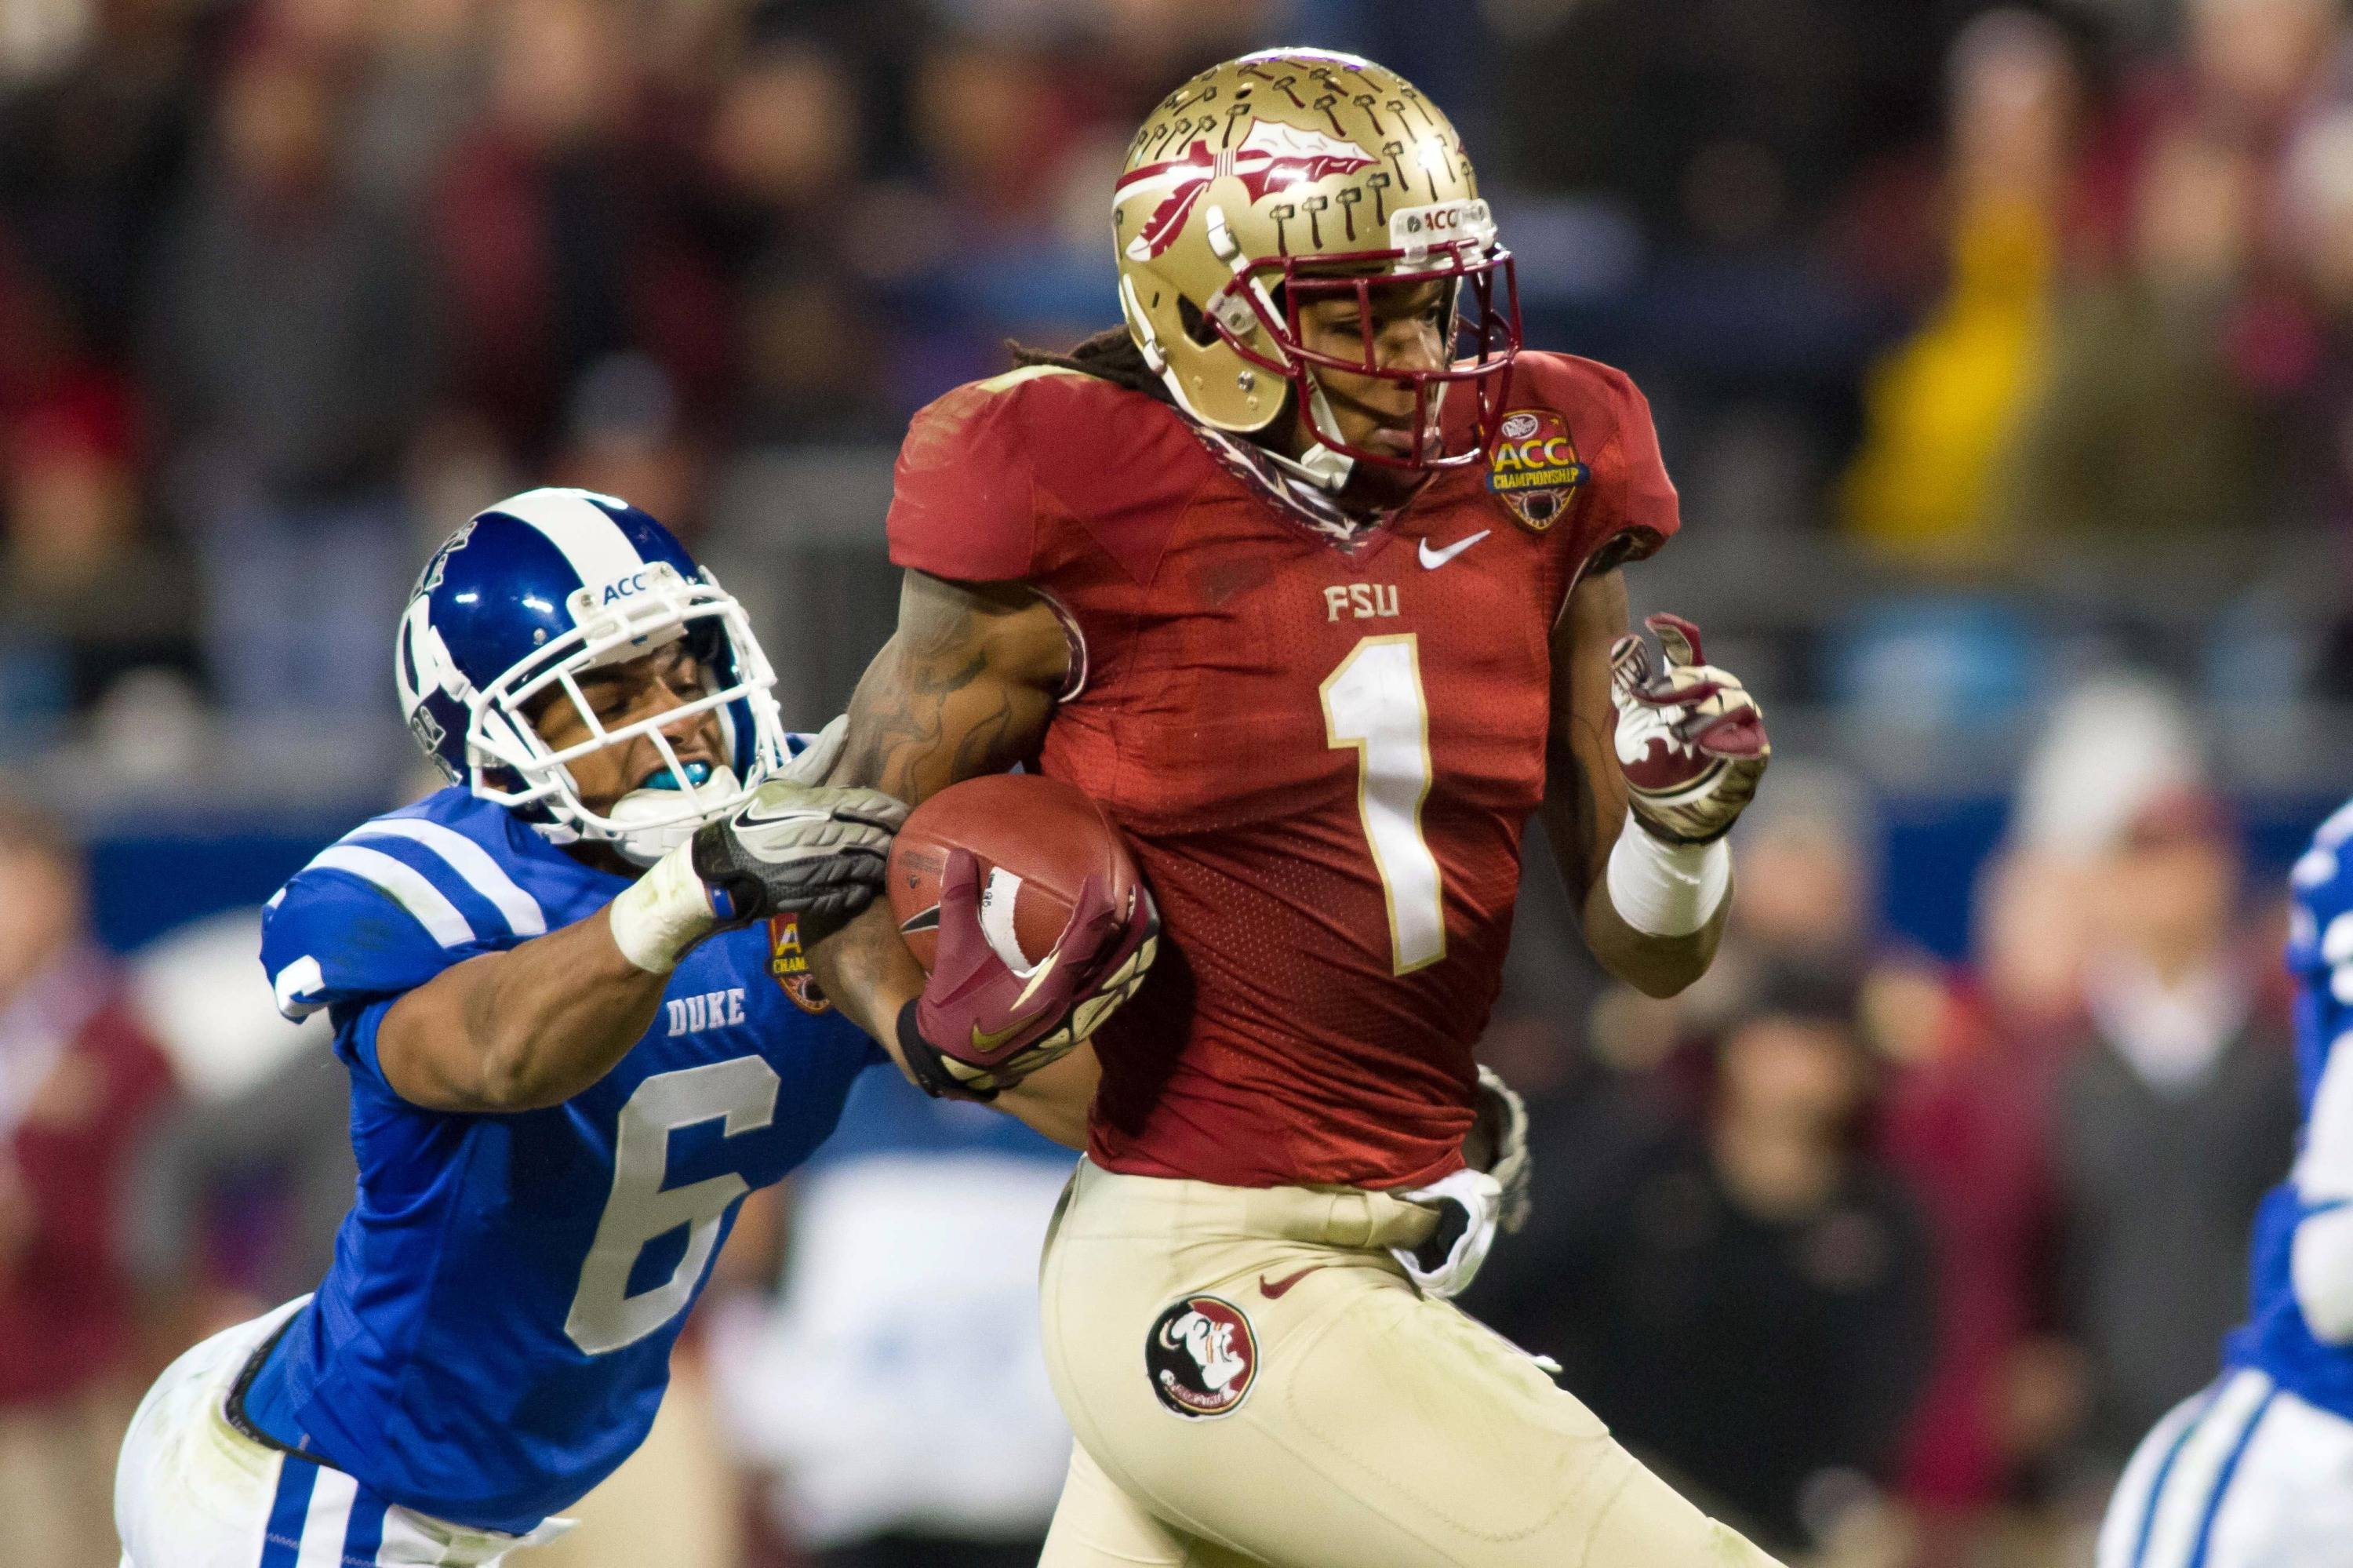 Dec 7, 2013; Charlotte, NC, USA; Florida State Seminoles wide receiver Kelvin Benjamin (1) runs by the tackle of Duke Blue Devils cornerback Ross Cockrell (6) during the third quarter at Bank of America Stadium. FSU defeated Duke 45-7. Mandatory Credit: Jeremy Brevard-USA TODAY Sports